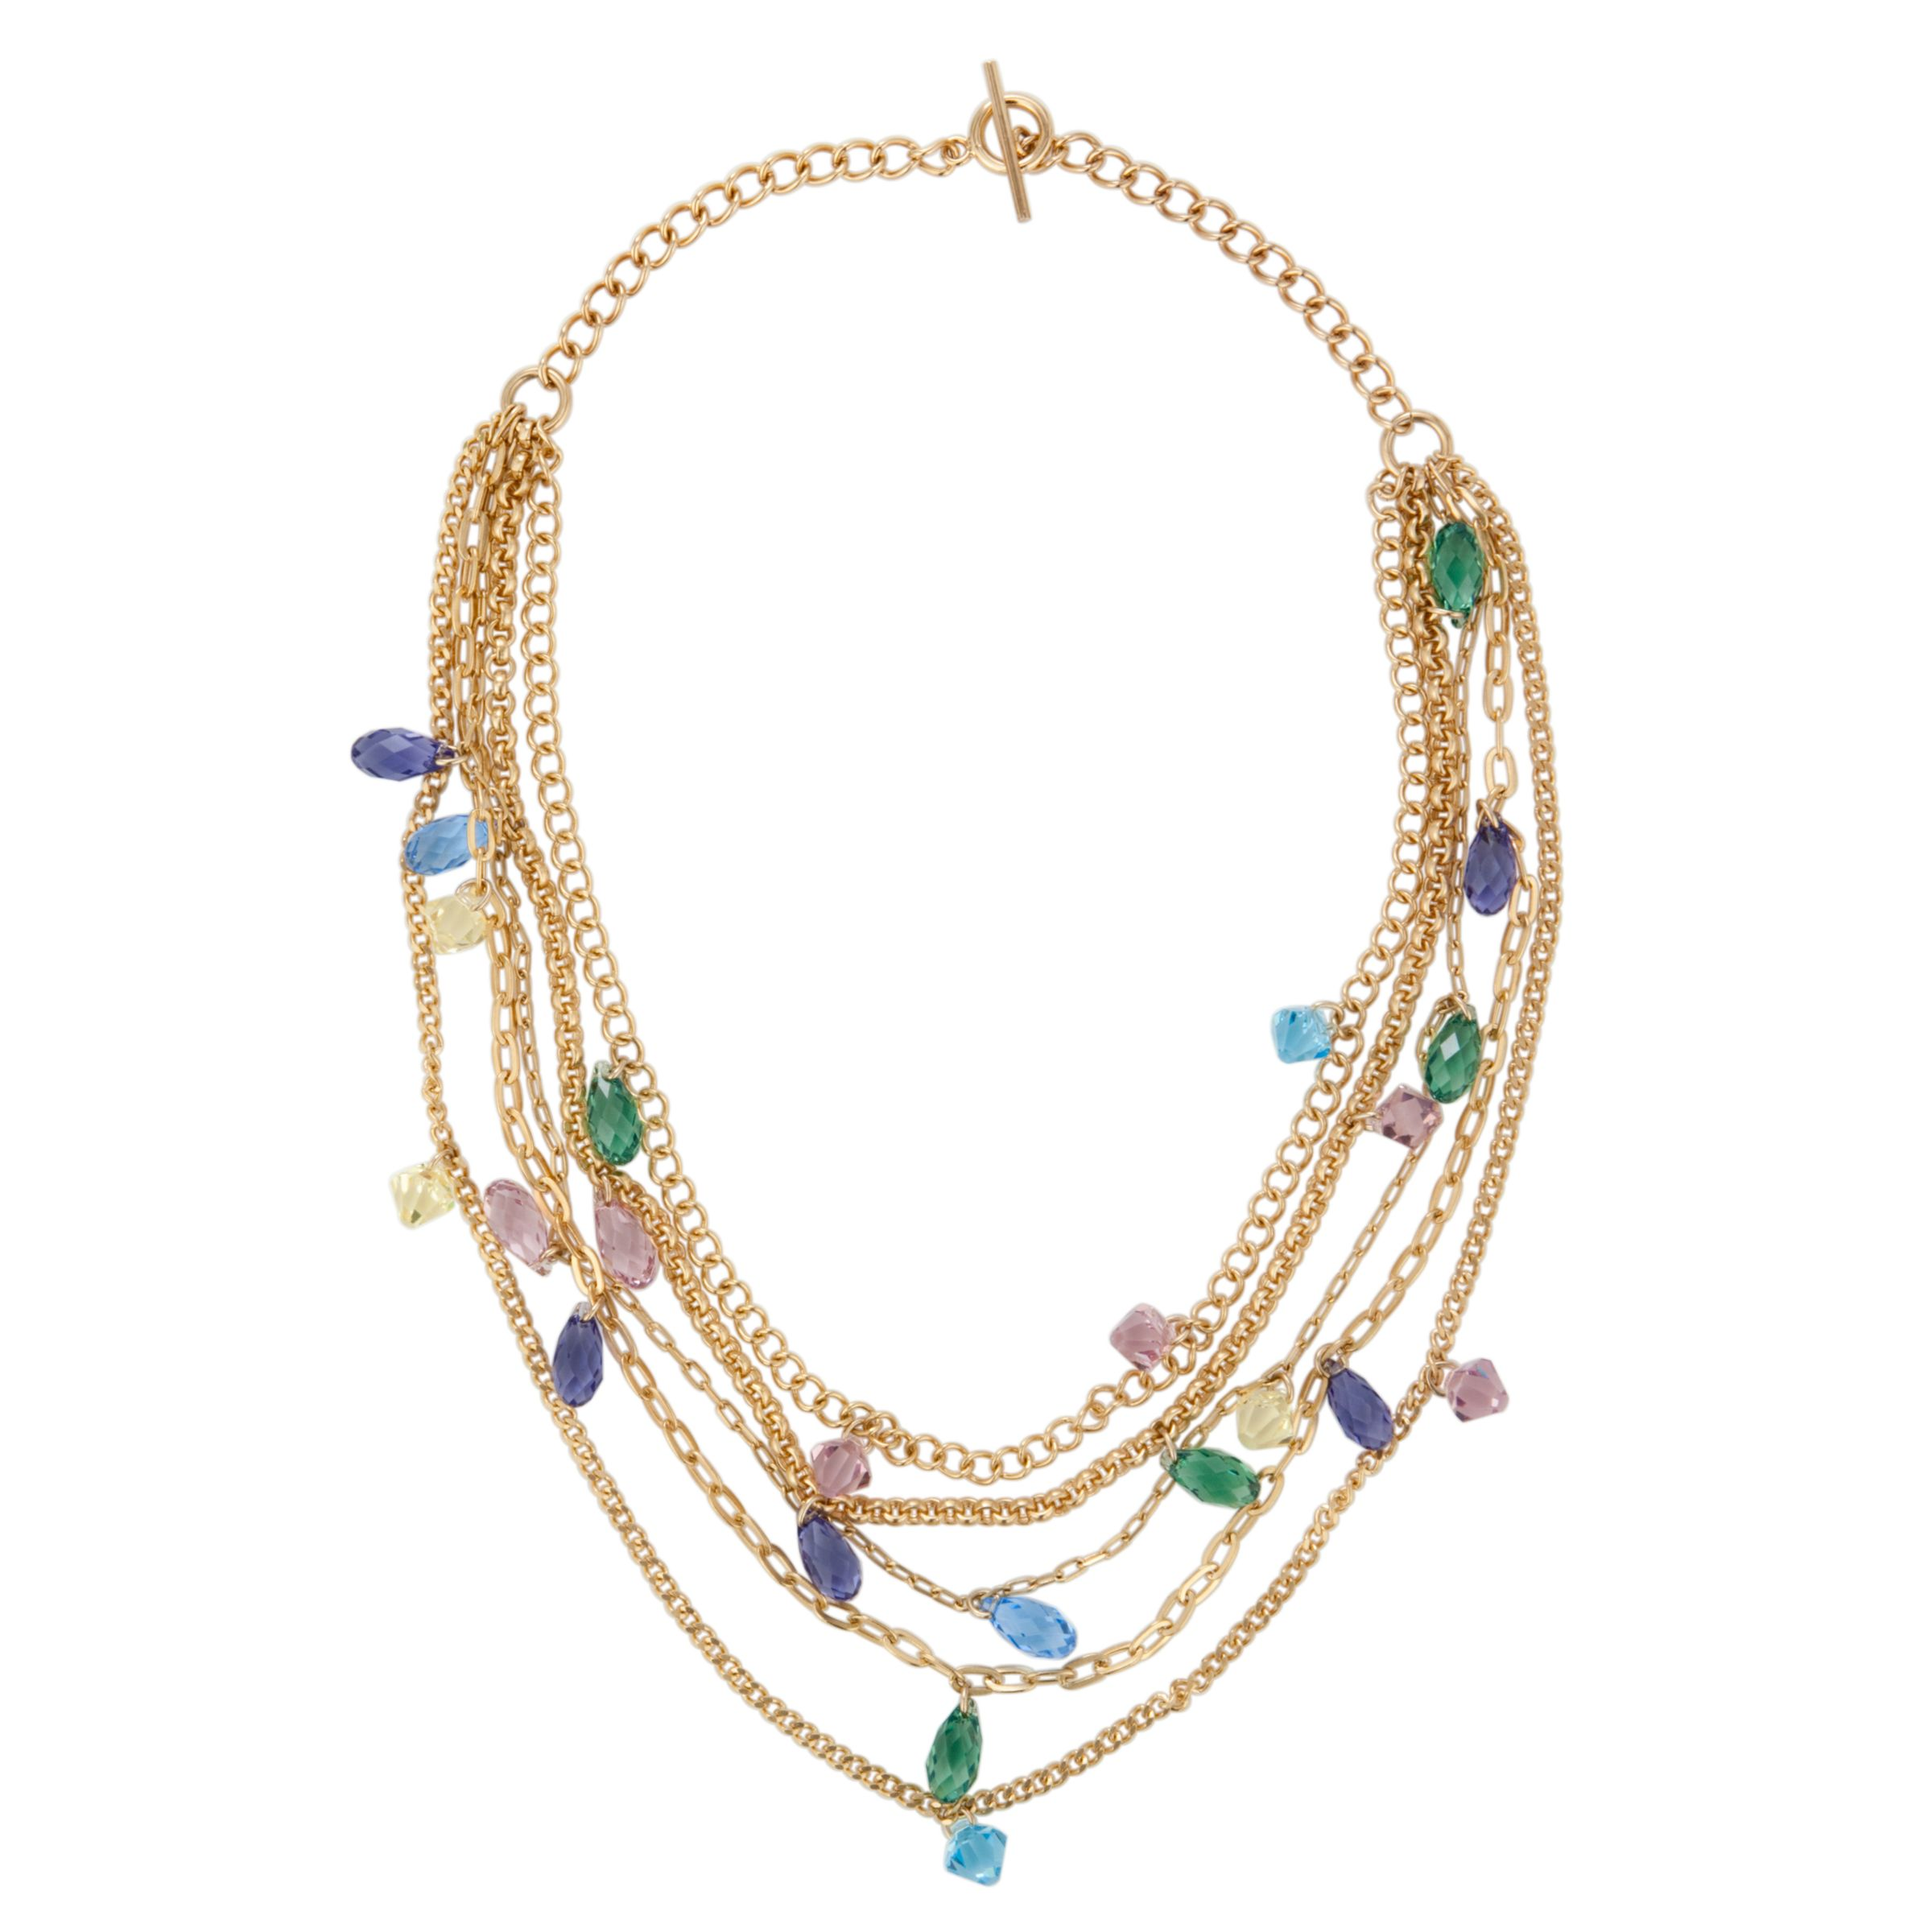 Inara Gold Plated 5 Row Multi Crystal Necklace